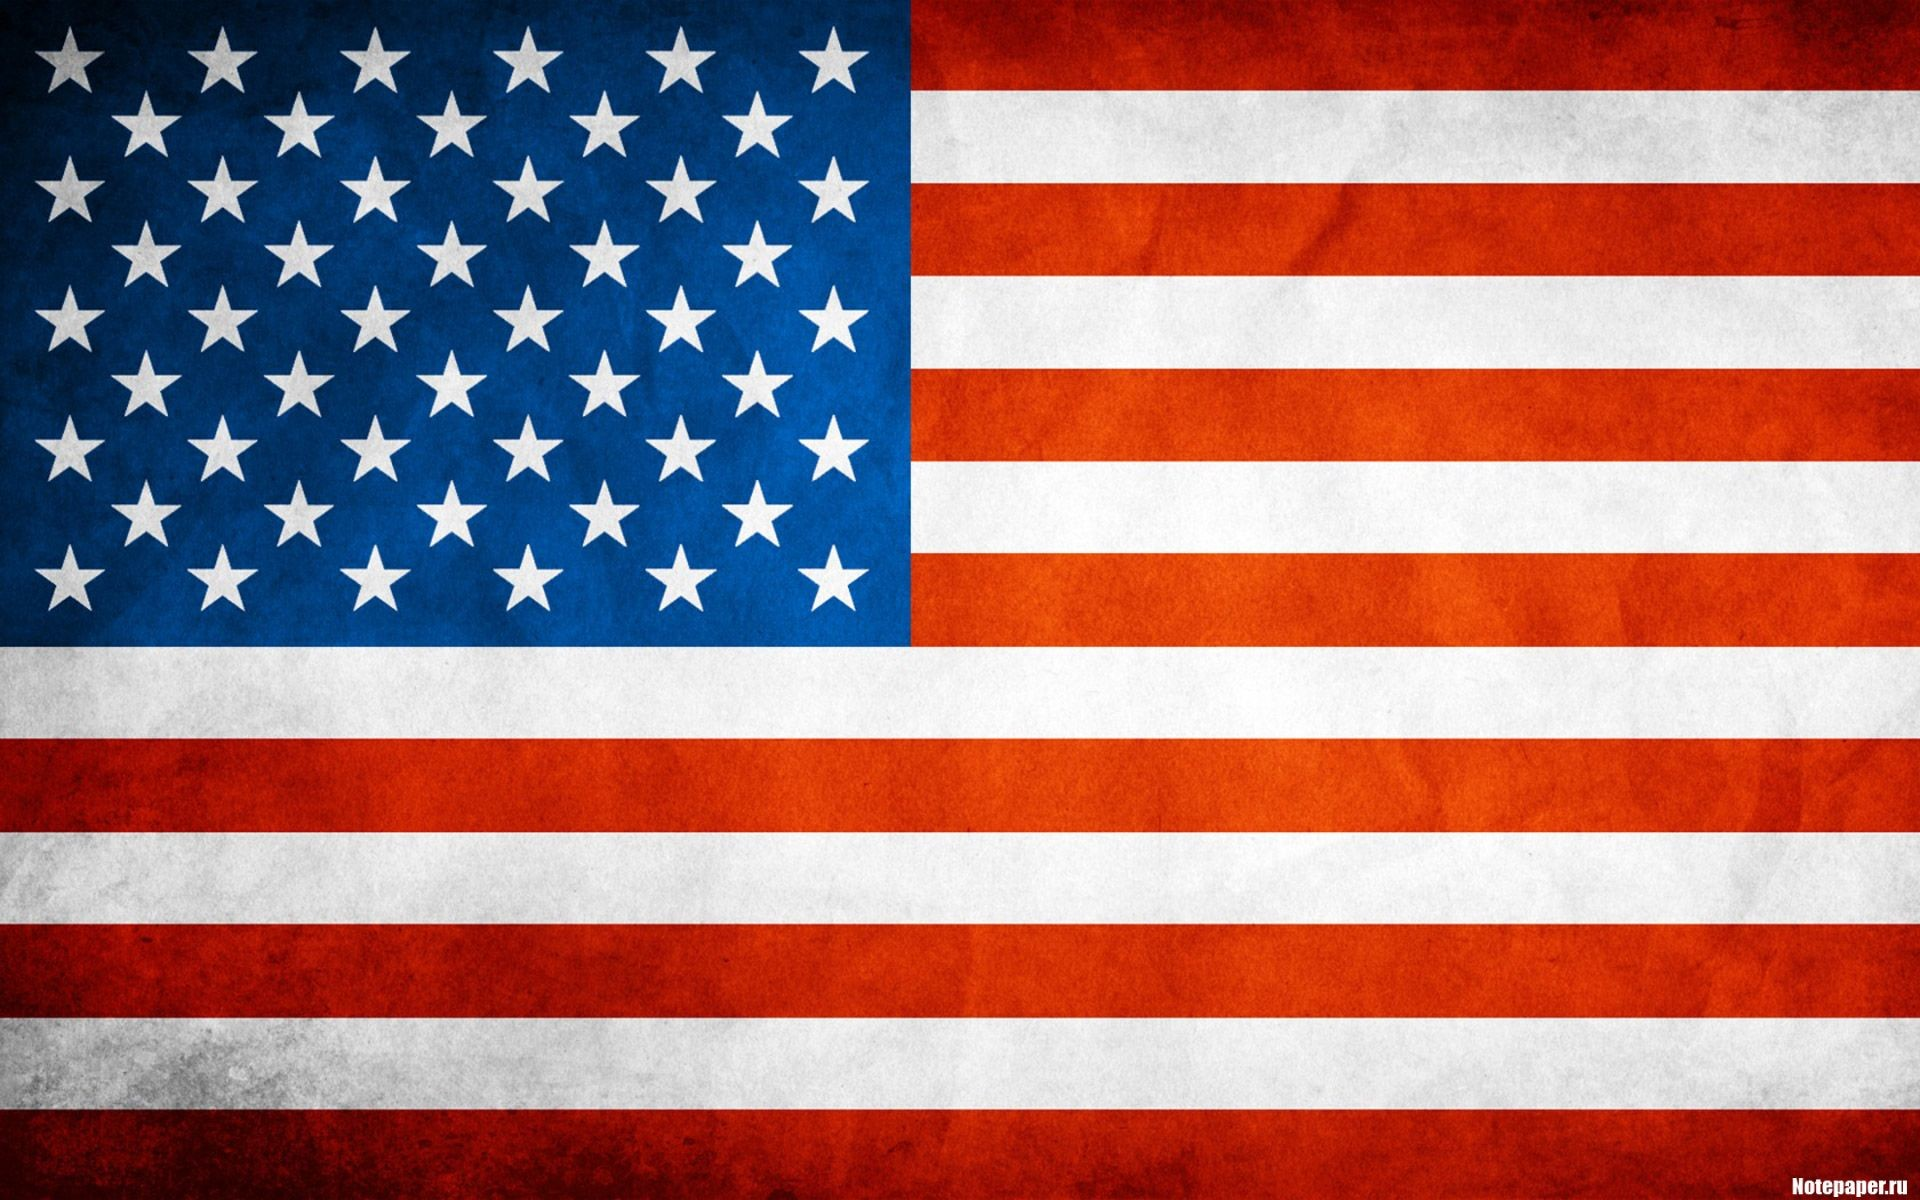 1920x1200 0 American Flag Desktop Backgrounds American Flag Desktop Backgrounds